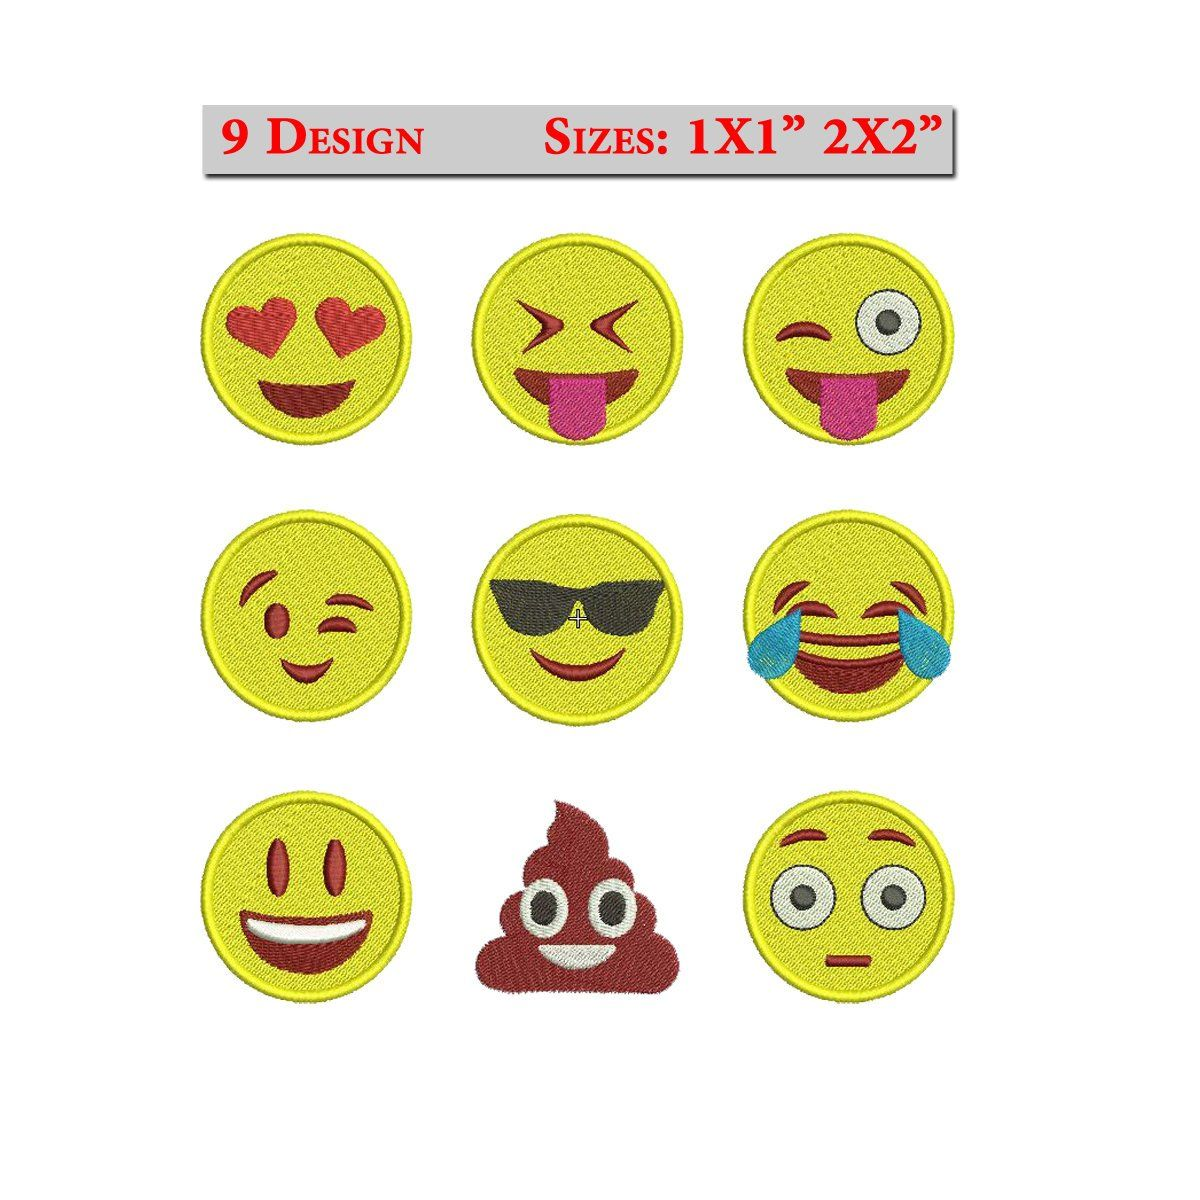 Emoji Embroidery Design Set Of 9 Whatsapp Machine Embroidery Design Smiley Emojis Emoticons Smiley Embroidery Emoji Face Instant Download With Images Embroidery Design Sets Machine Embroidery Designs Embroidery Designs